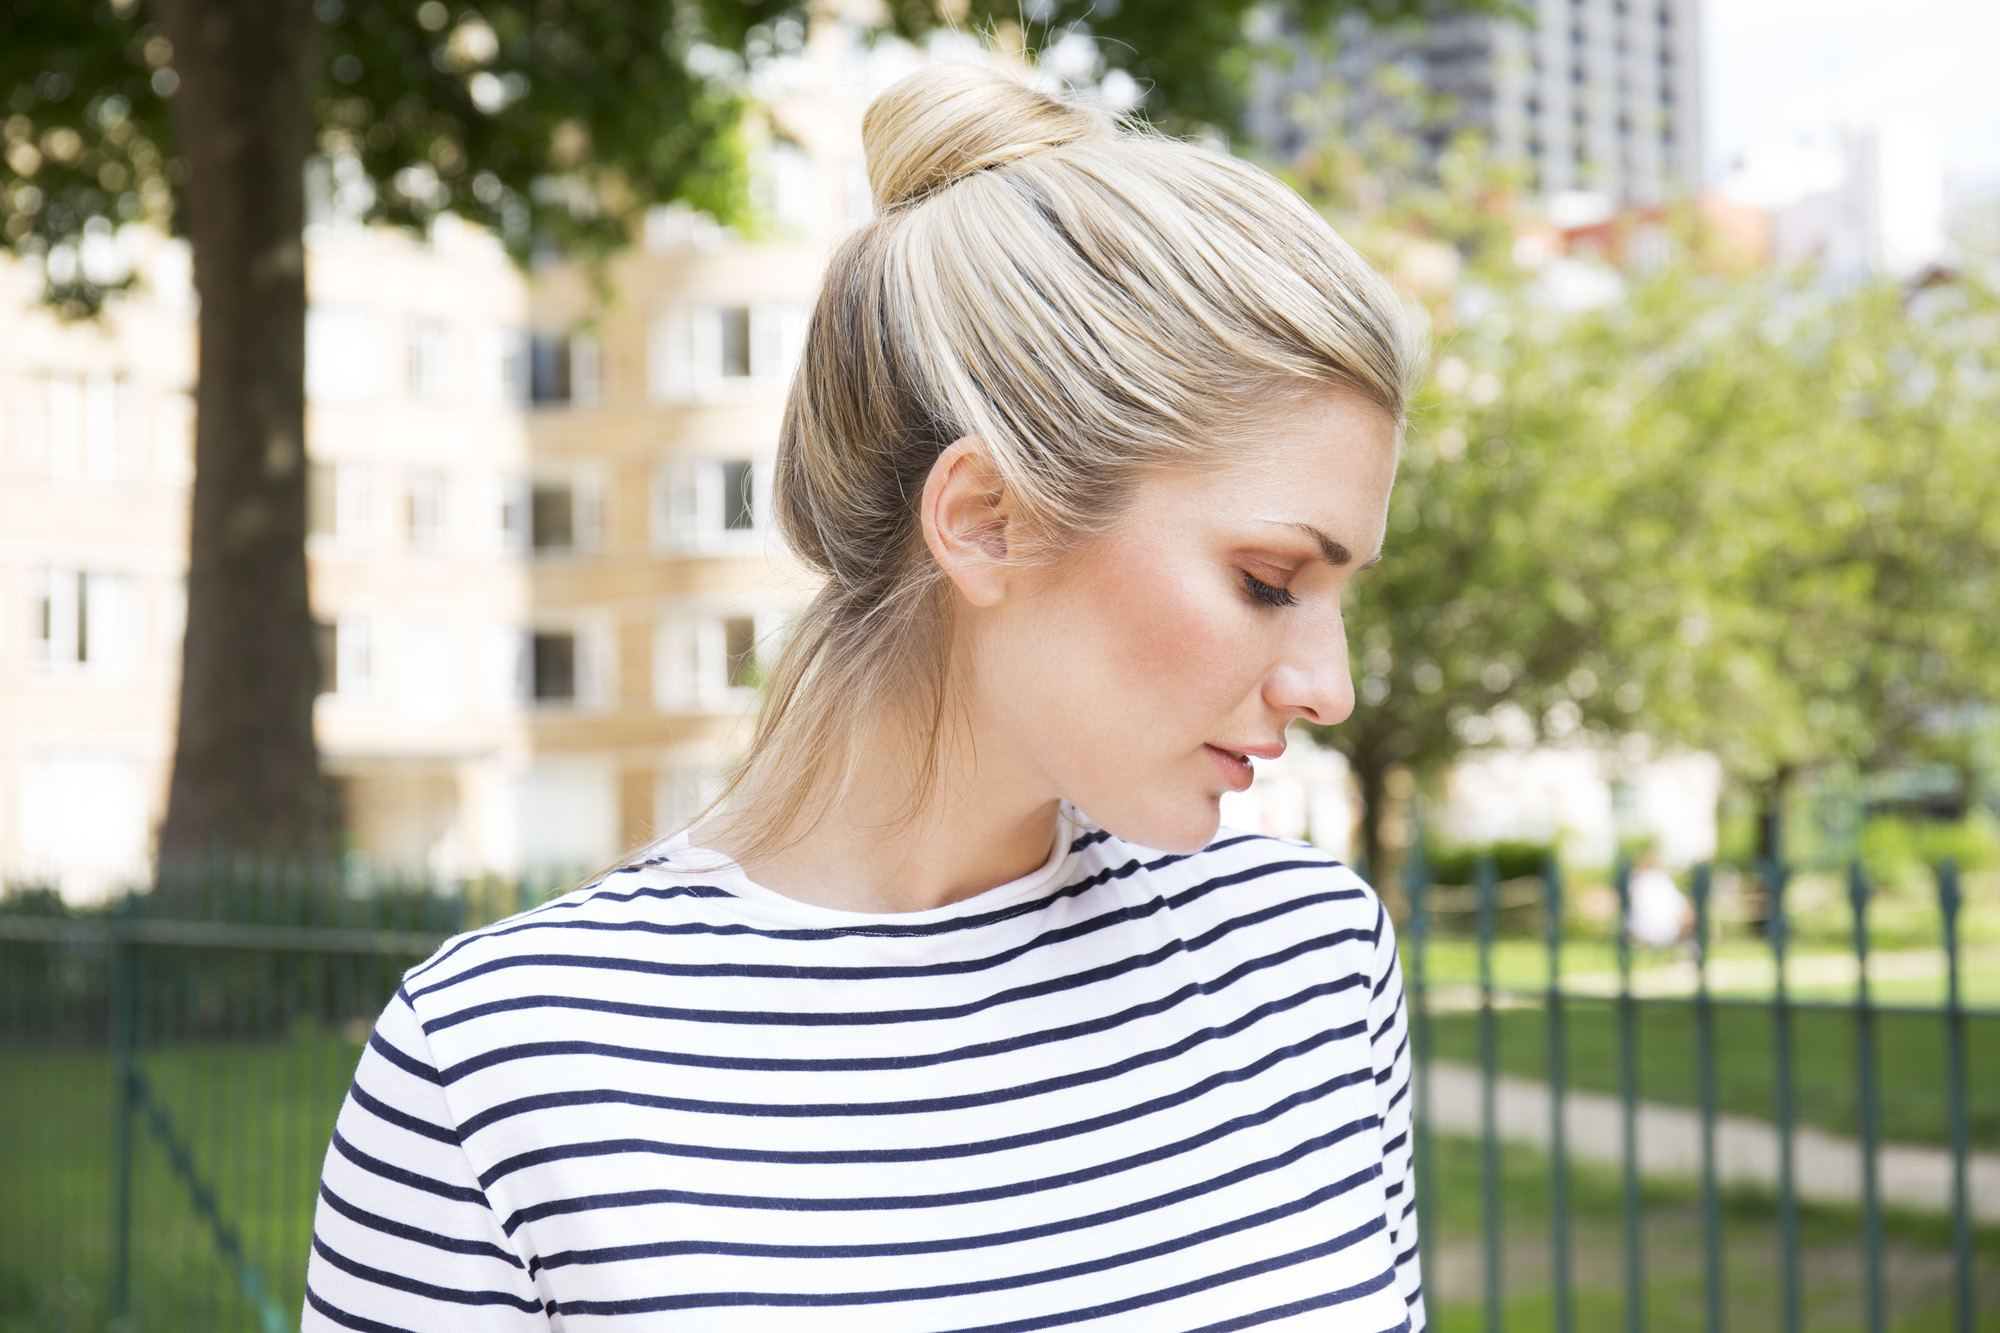 Easy updo - High bun on blonde model wearing a striped top in a park